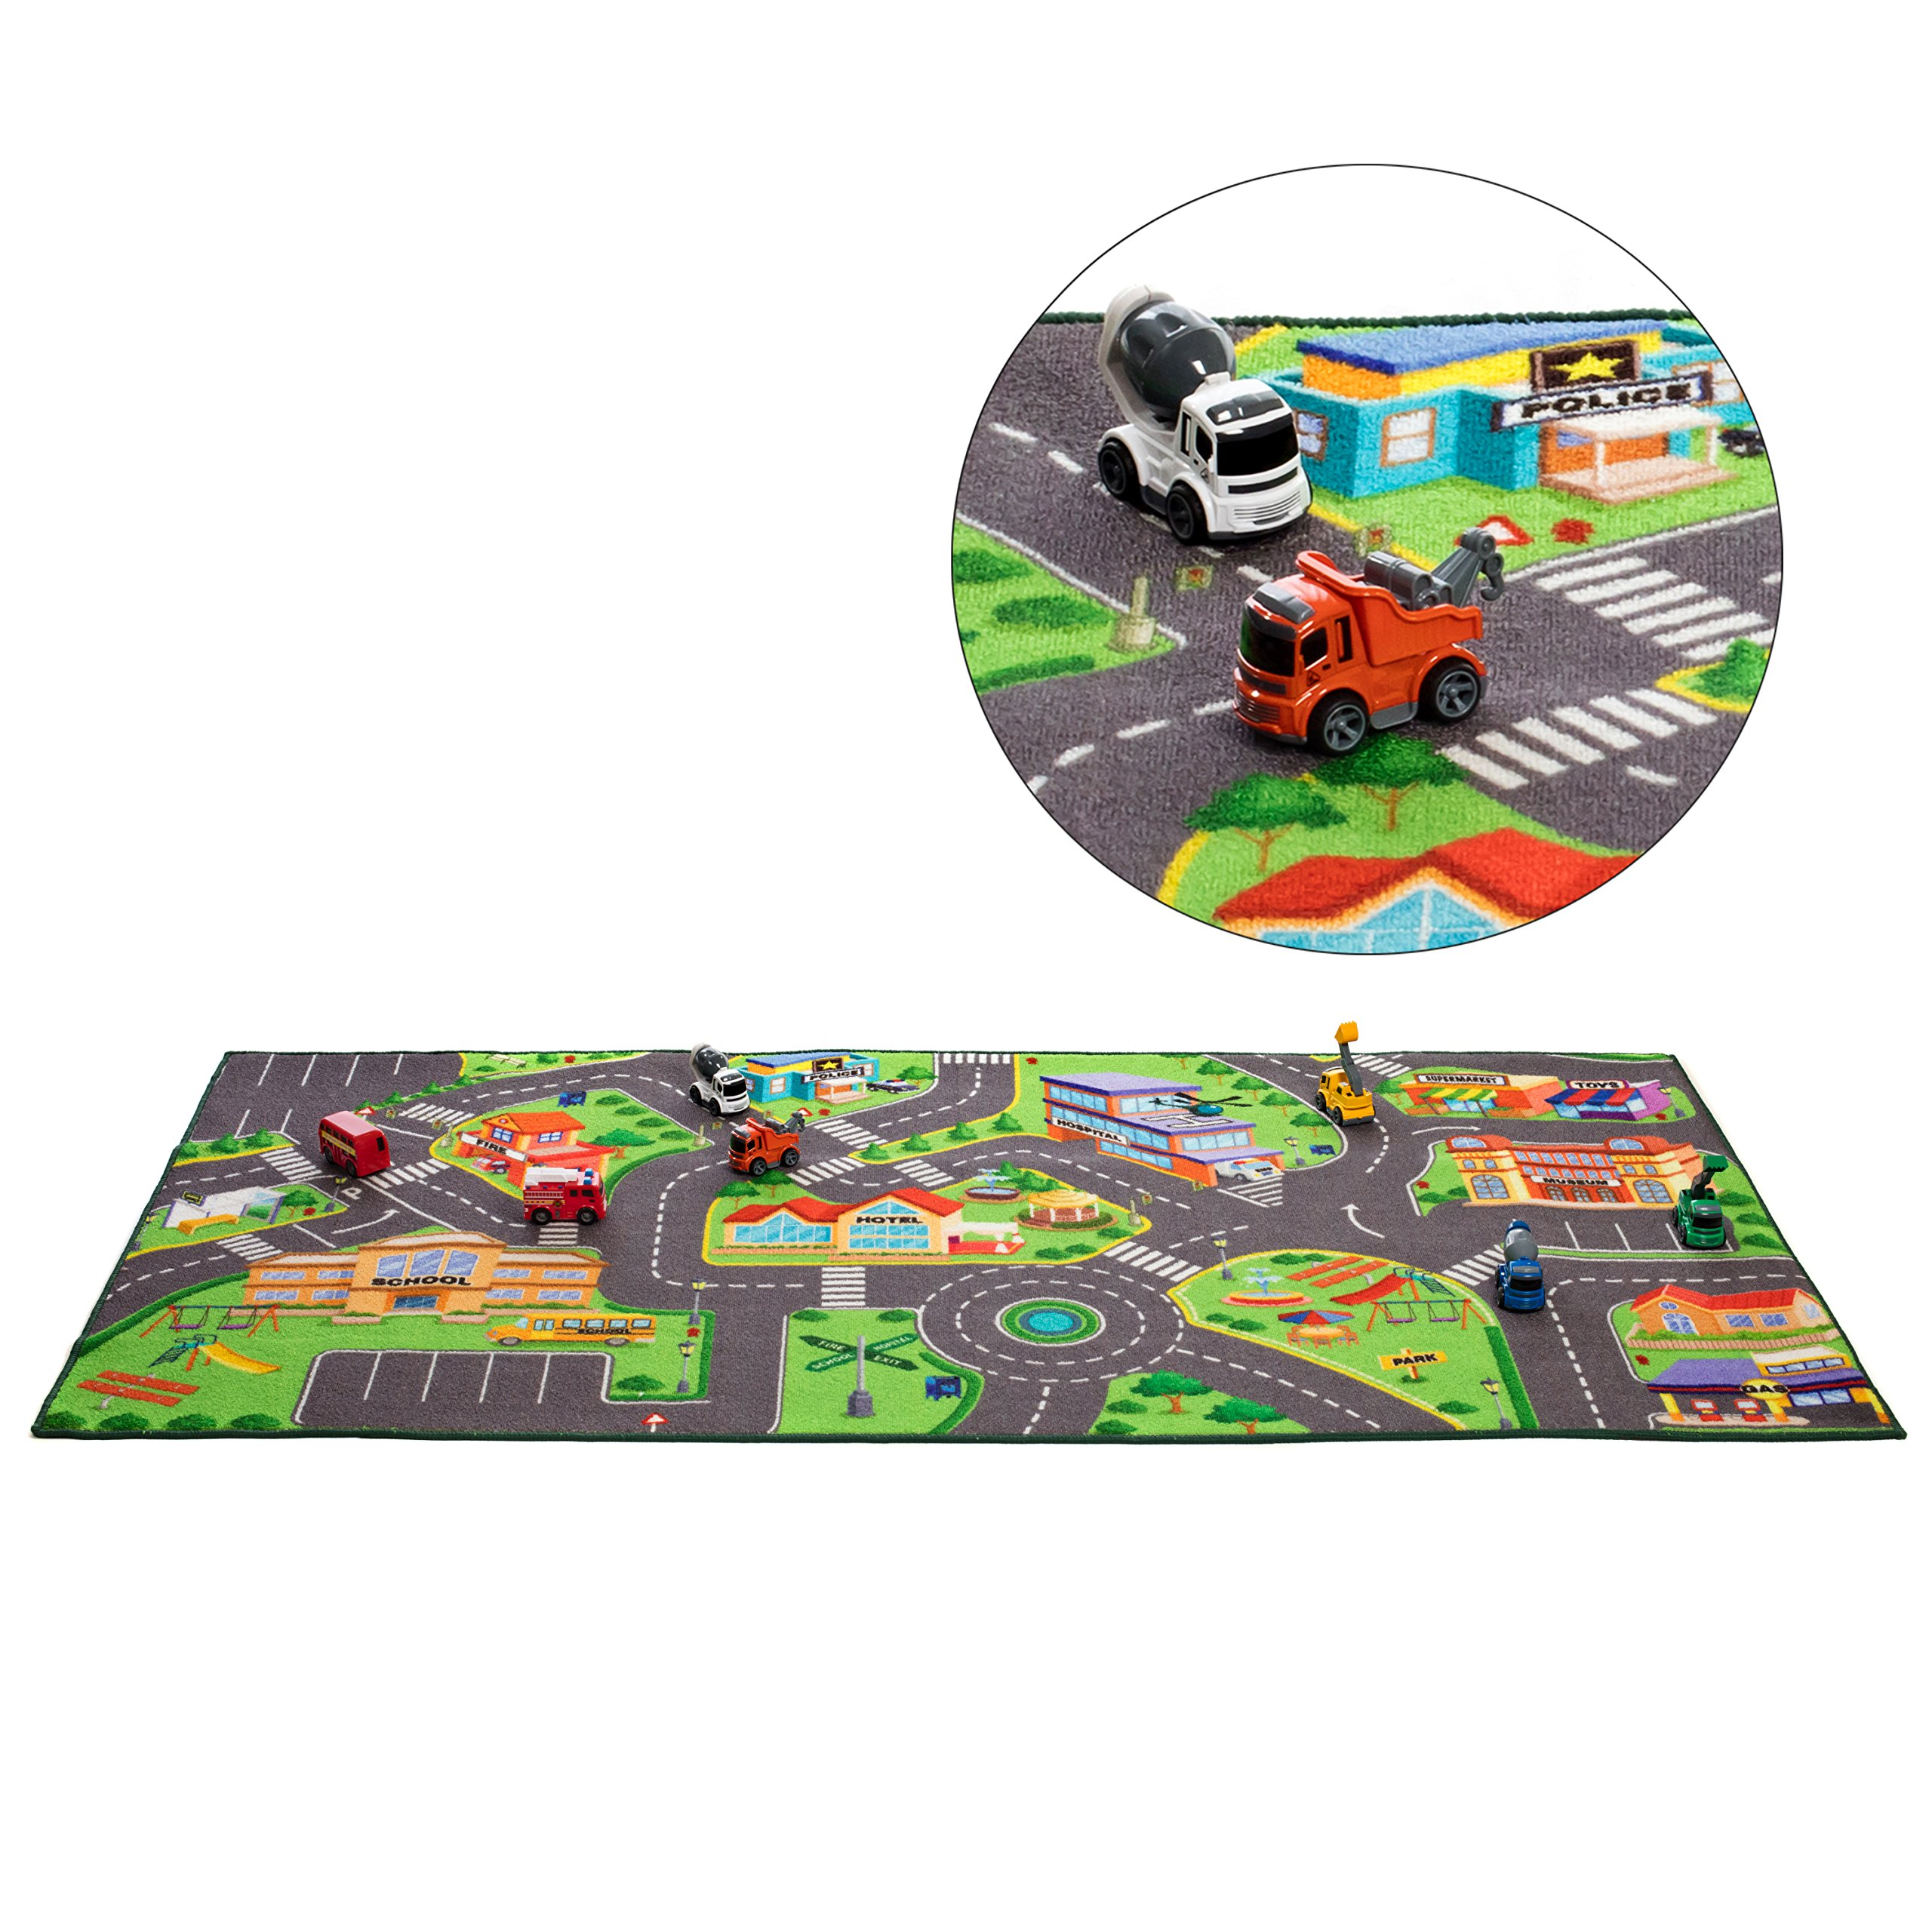 Washable Community Play Rug For Matchbox Cars 36 X 72 Inches